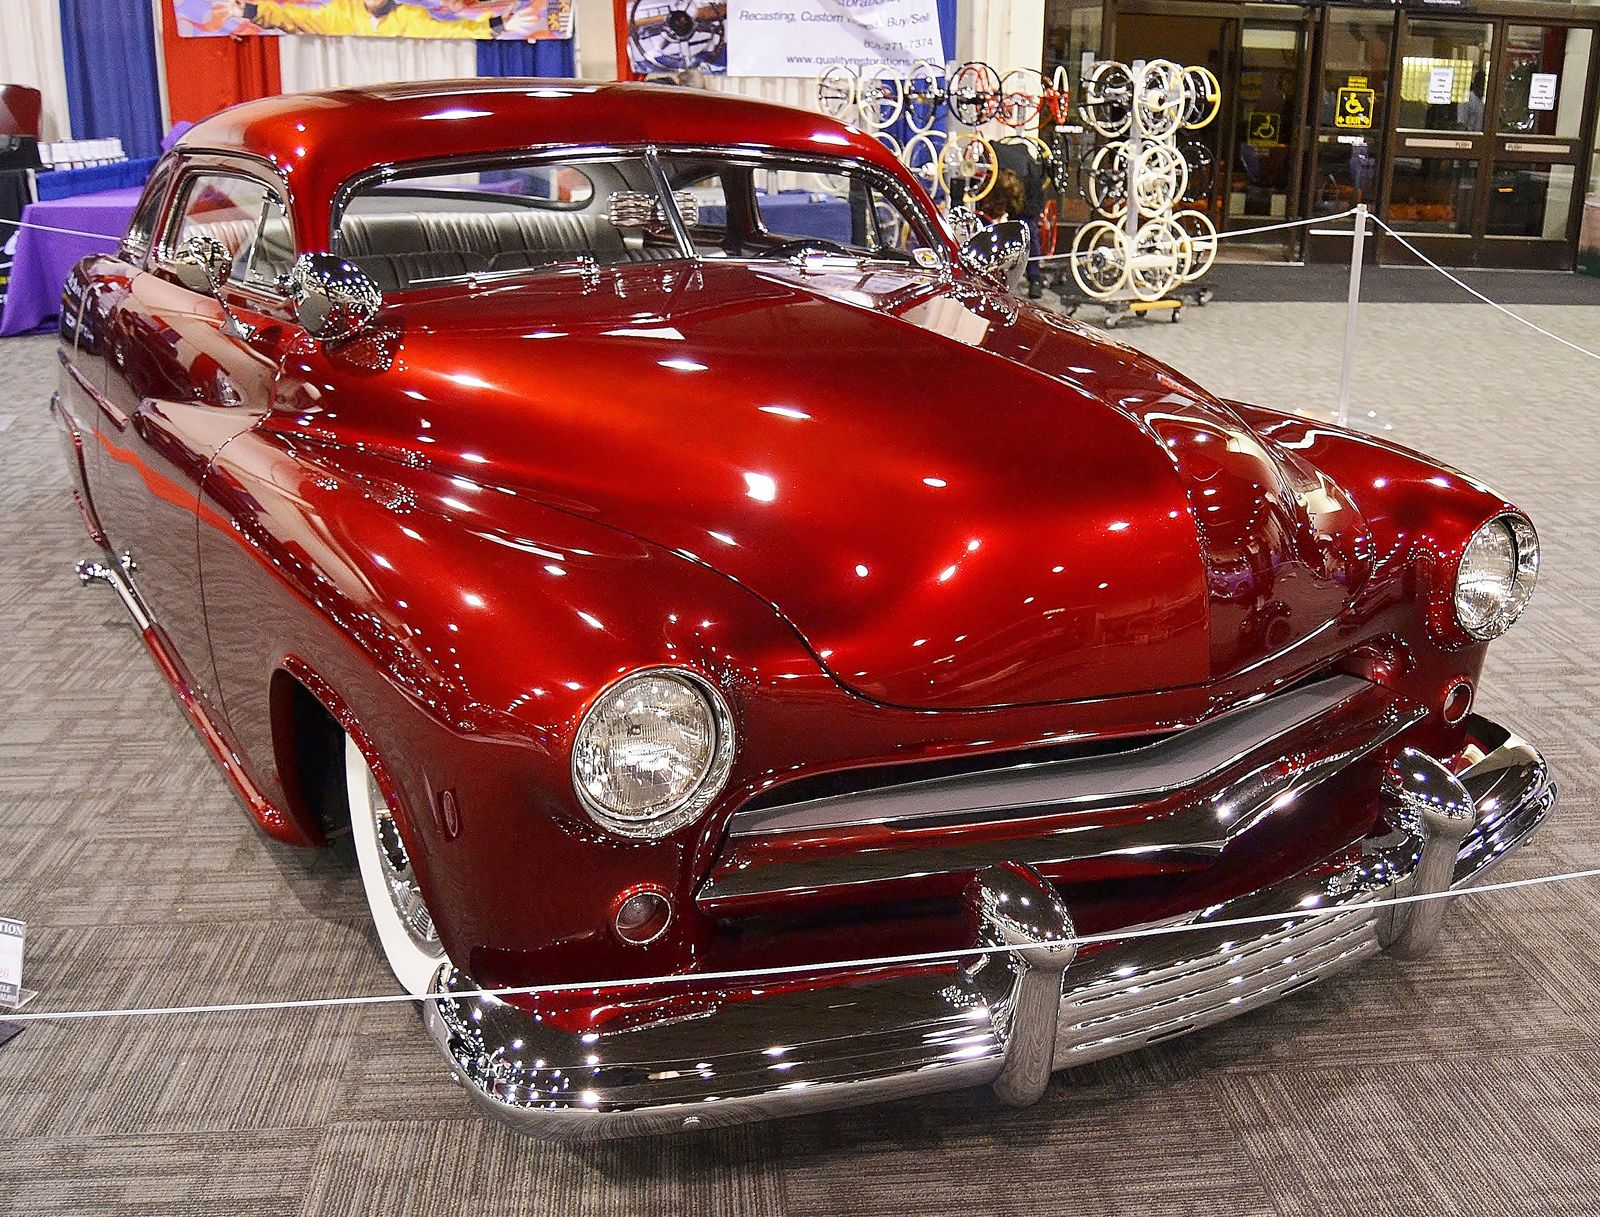 2014 GRAND NATIONAL ROADSTER SHOW | Street, Cars and Custom cars